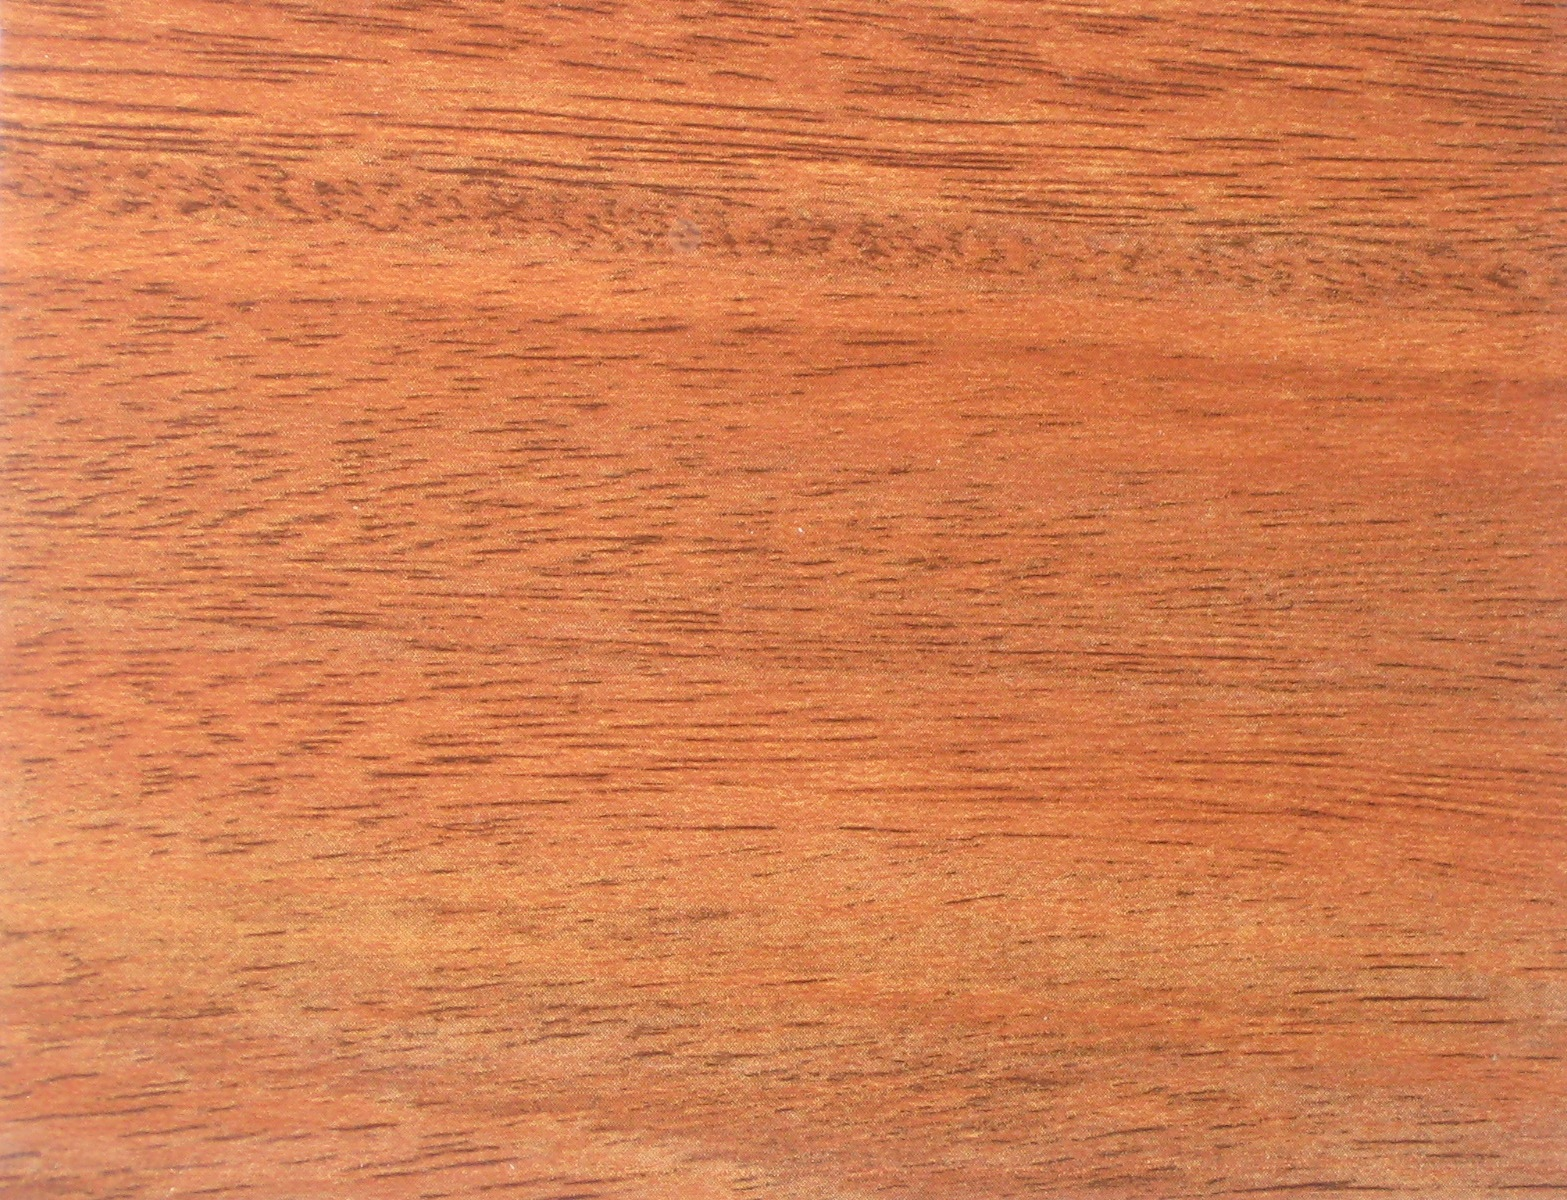 Chic New Light Oak By Konecto For Flooring Ideas